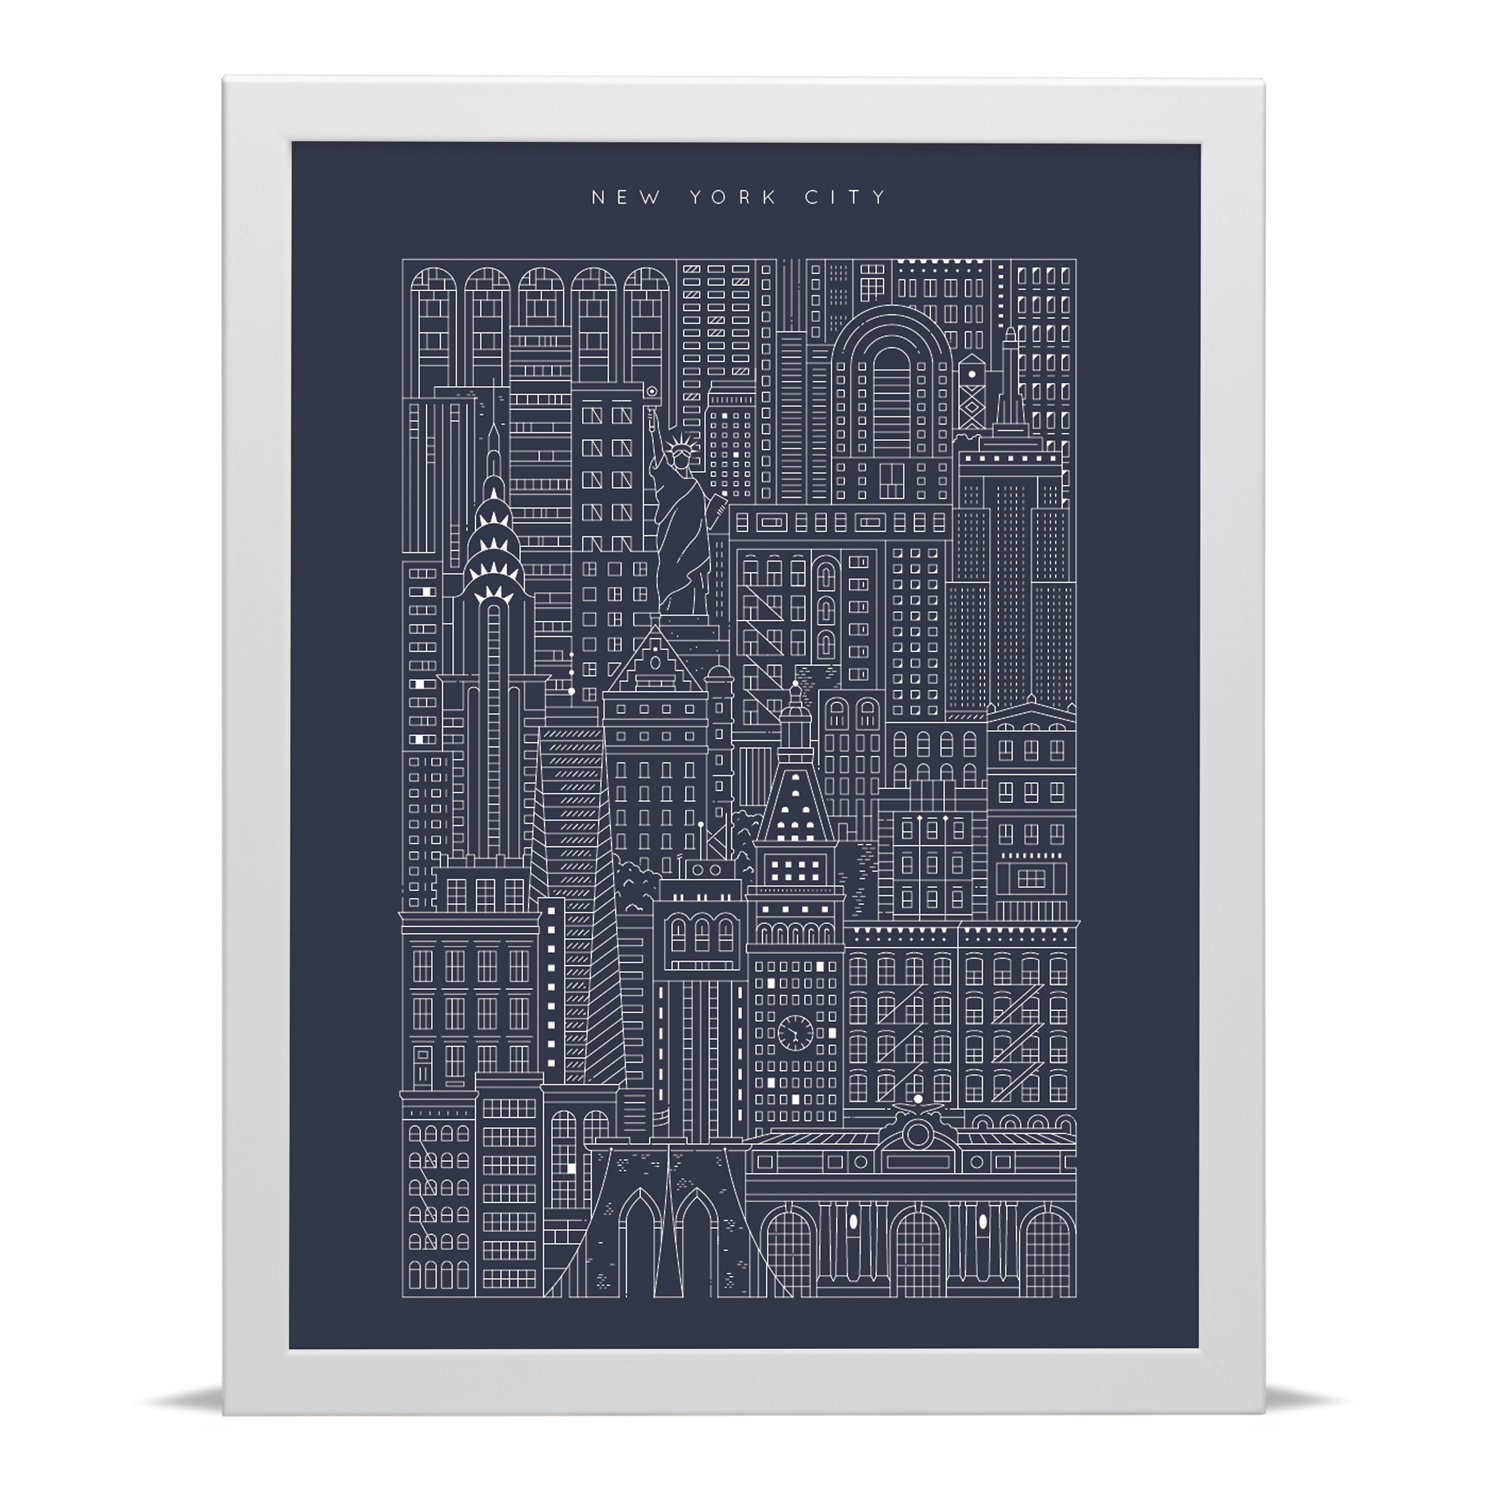 New york city blueprint archival art print new york art prints place in print the city works new york blueprint art print malvernweather Gallery